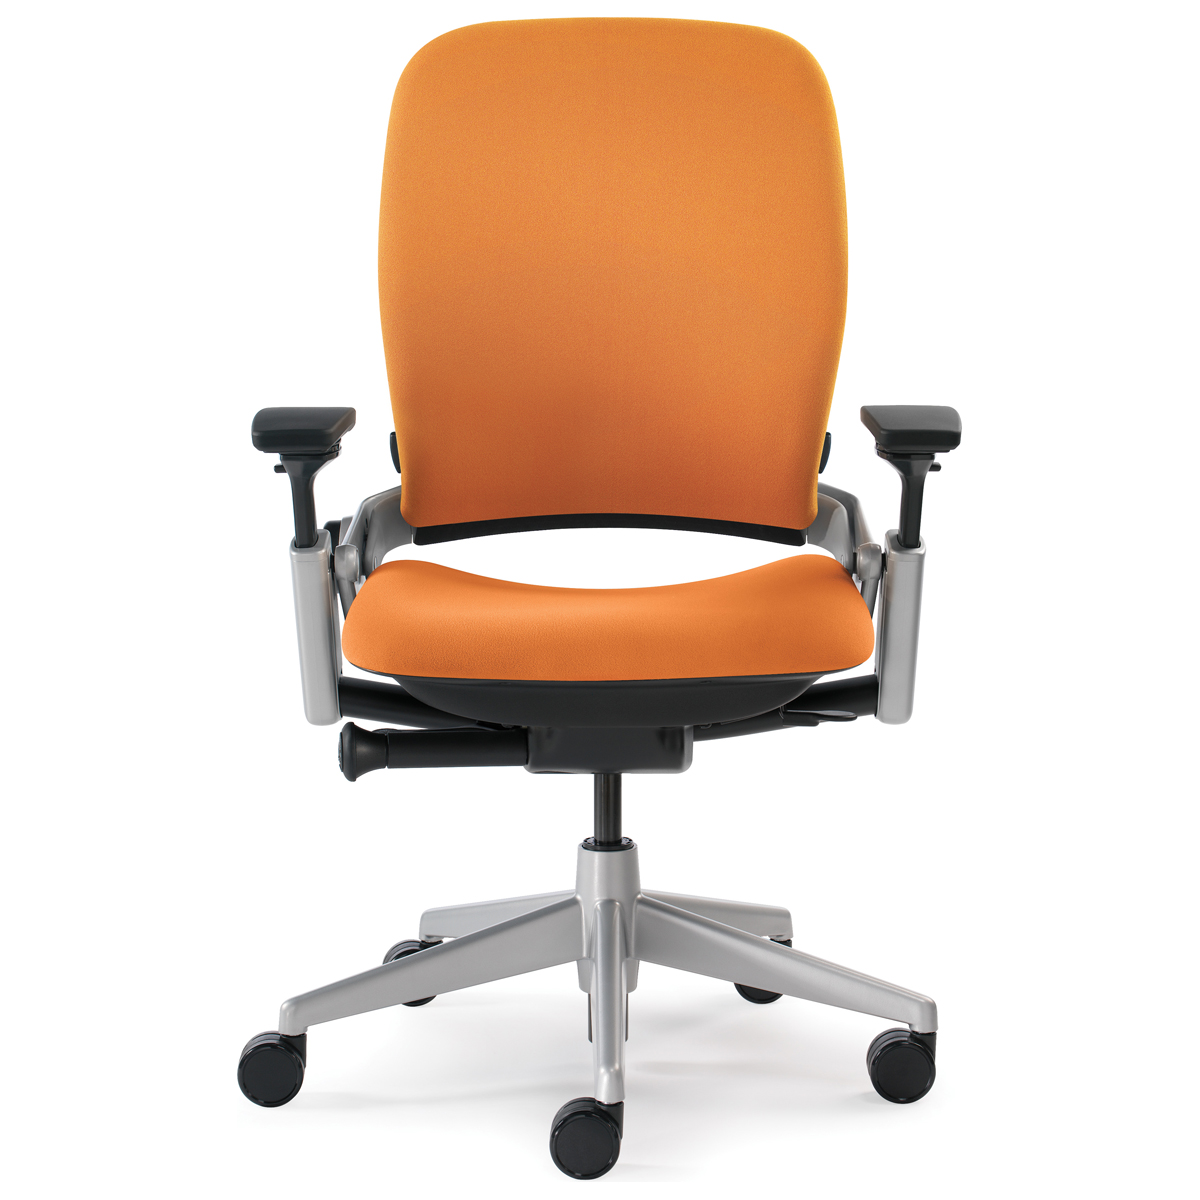 Steelcase Leap Chair - Steelcase Leap Ergonomic Office Chair